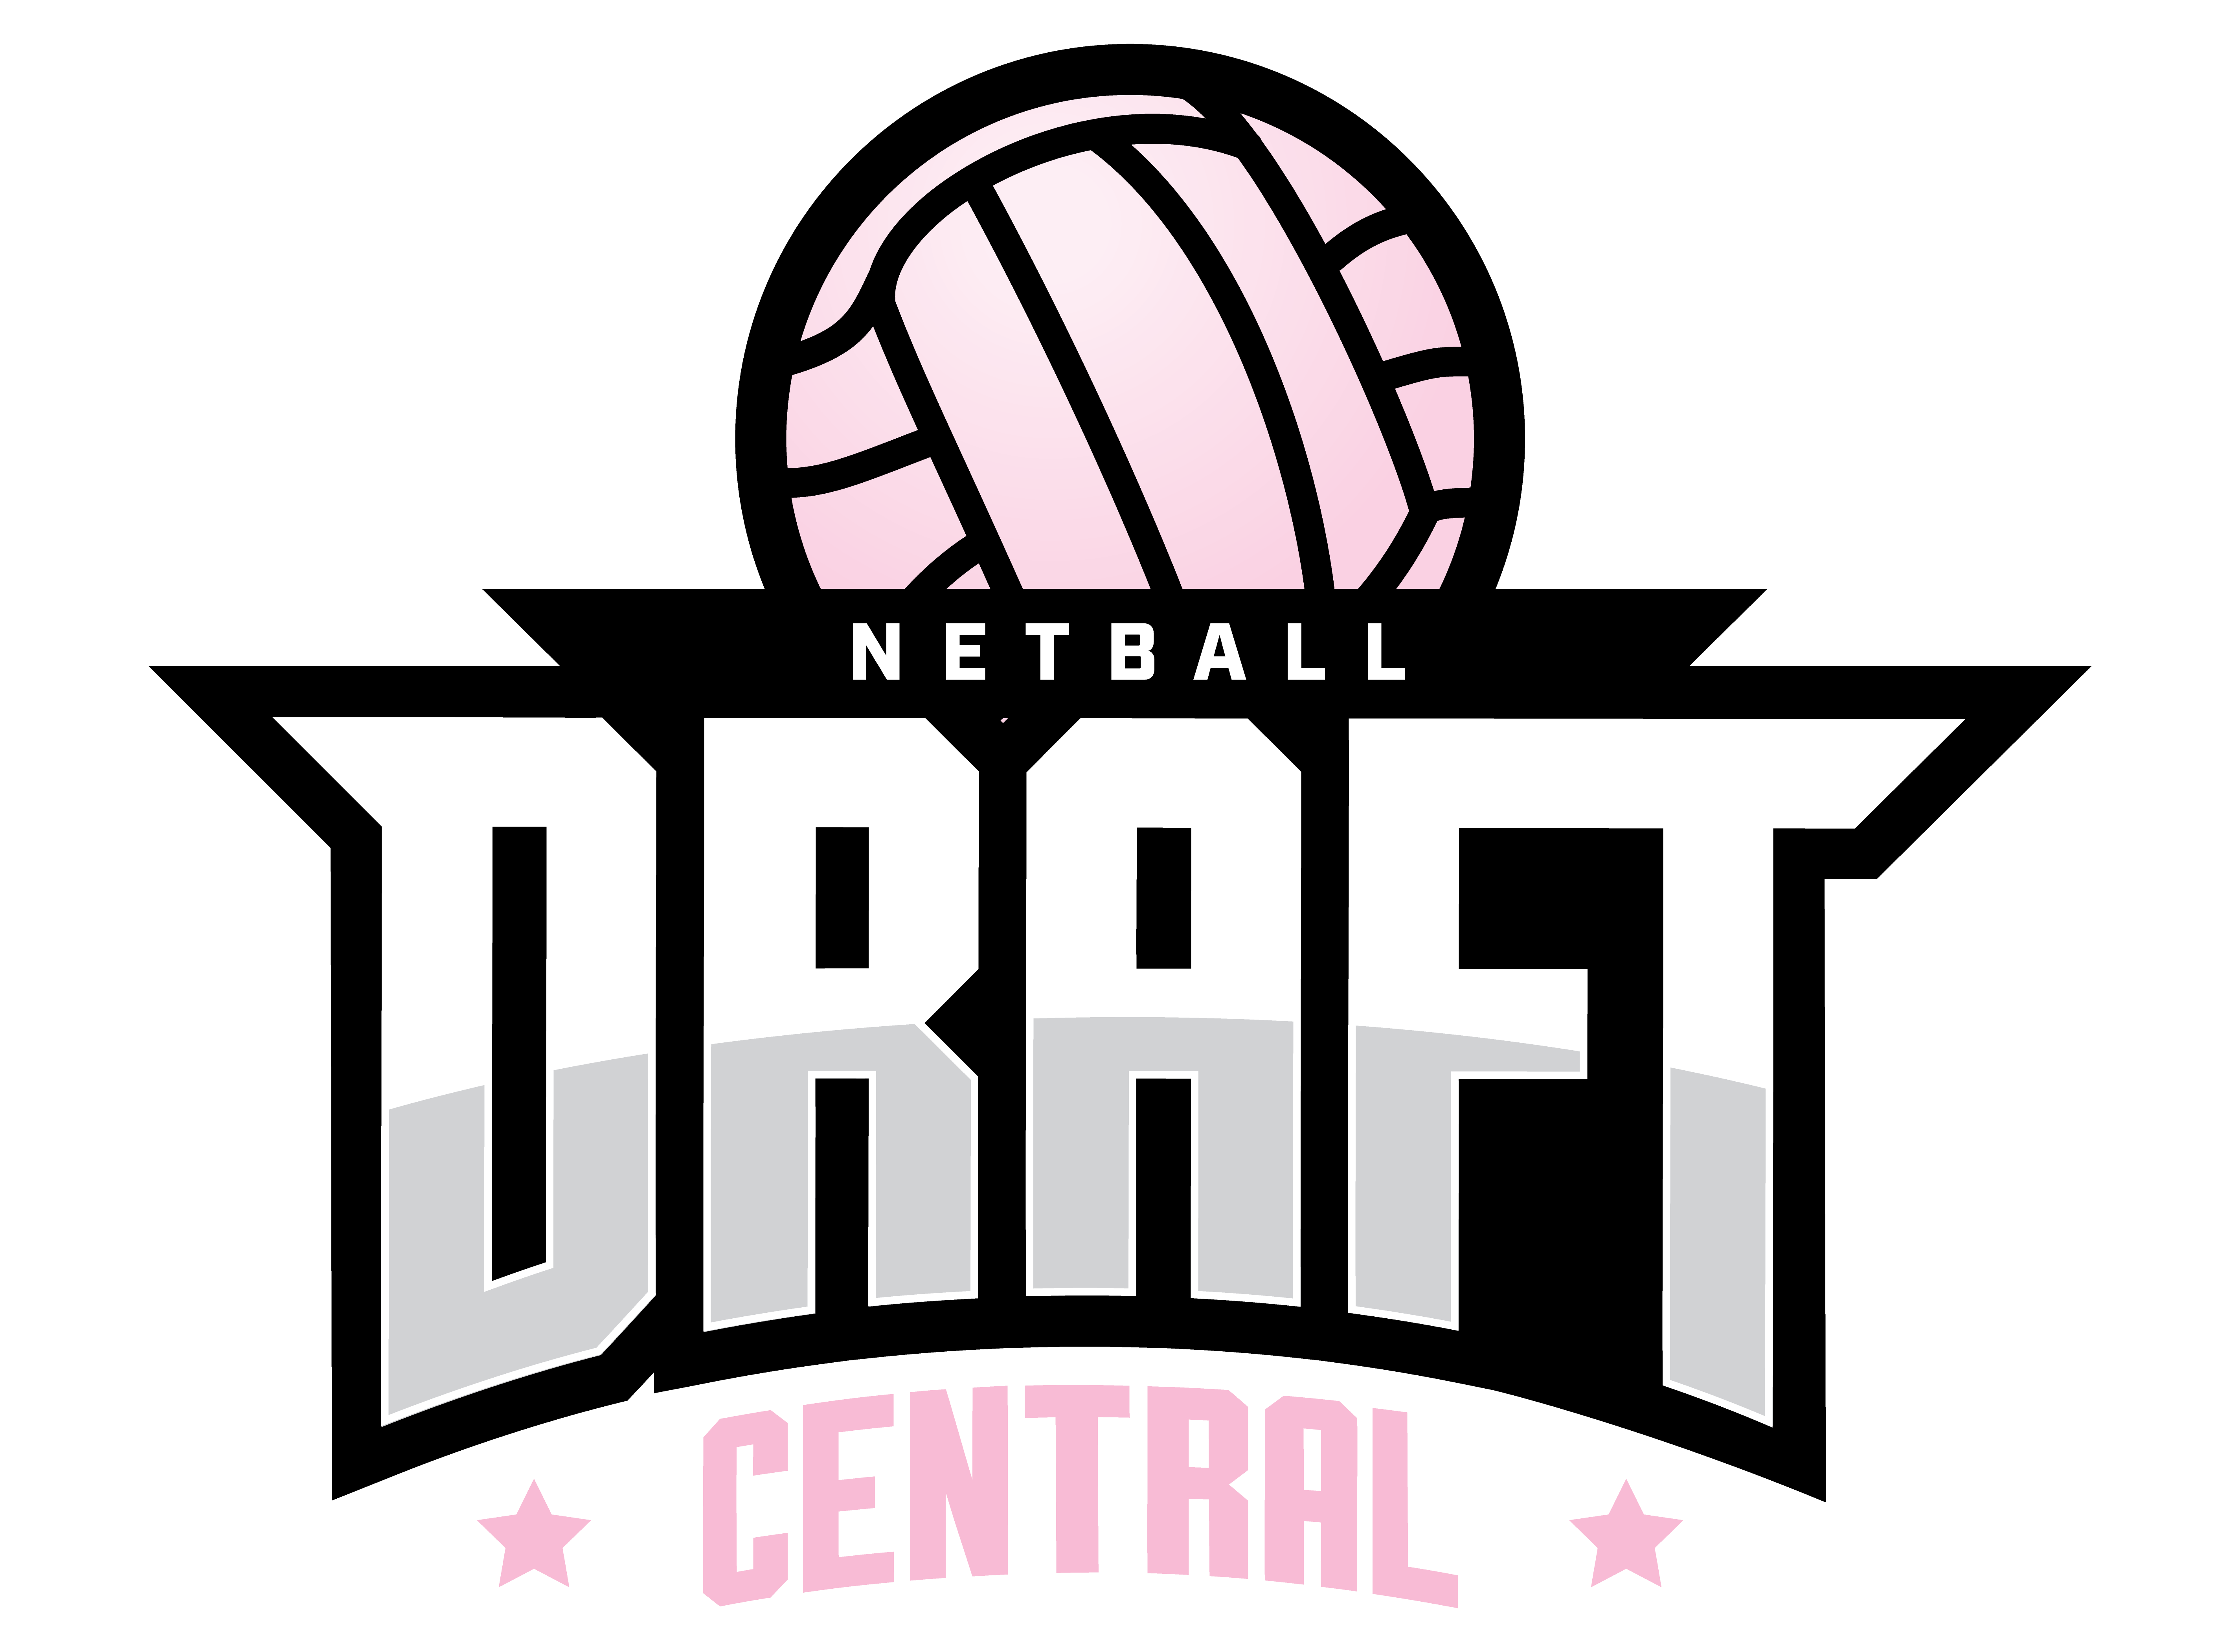 Netball Draft Central